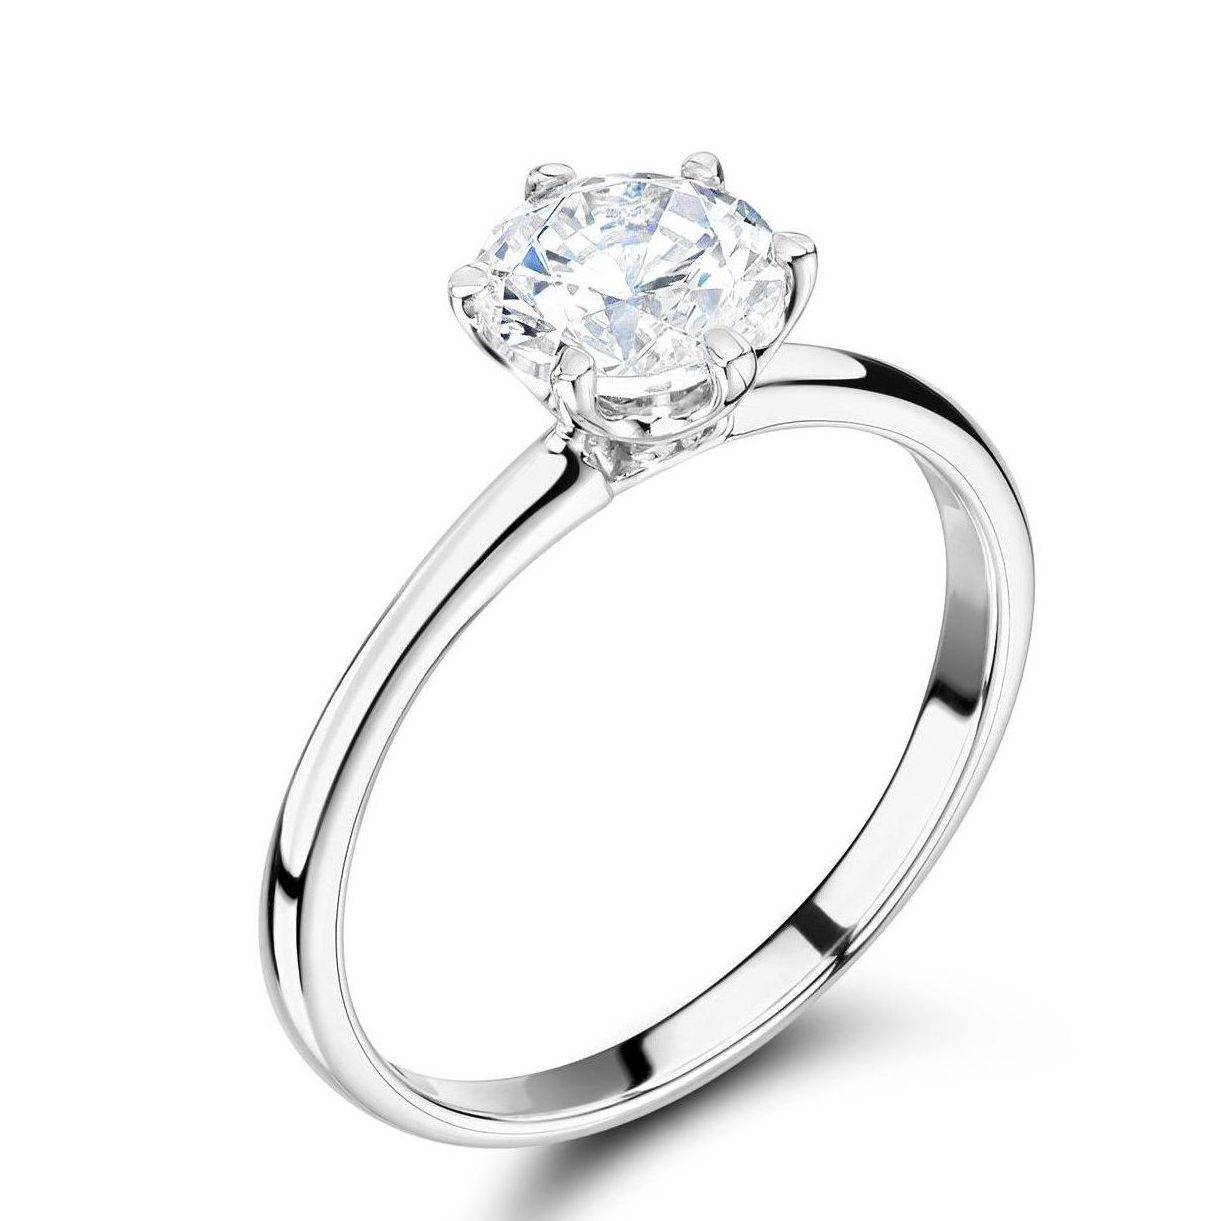 6 Claw Diamond Engagement Ring Round Brilliant Cut Solitaire Diamond